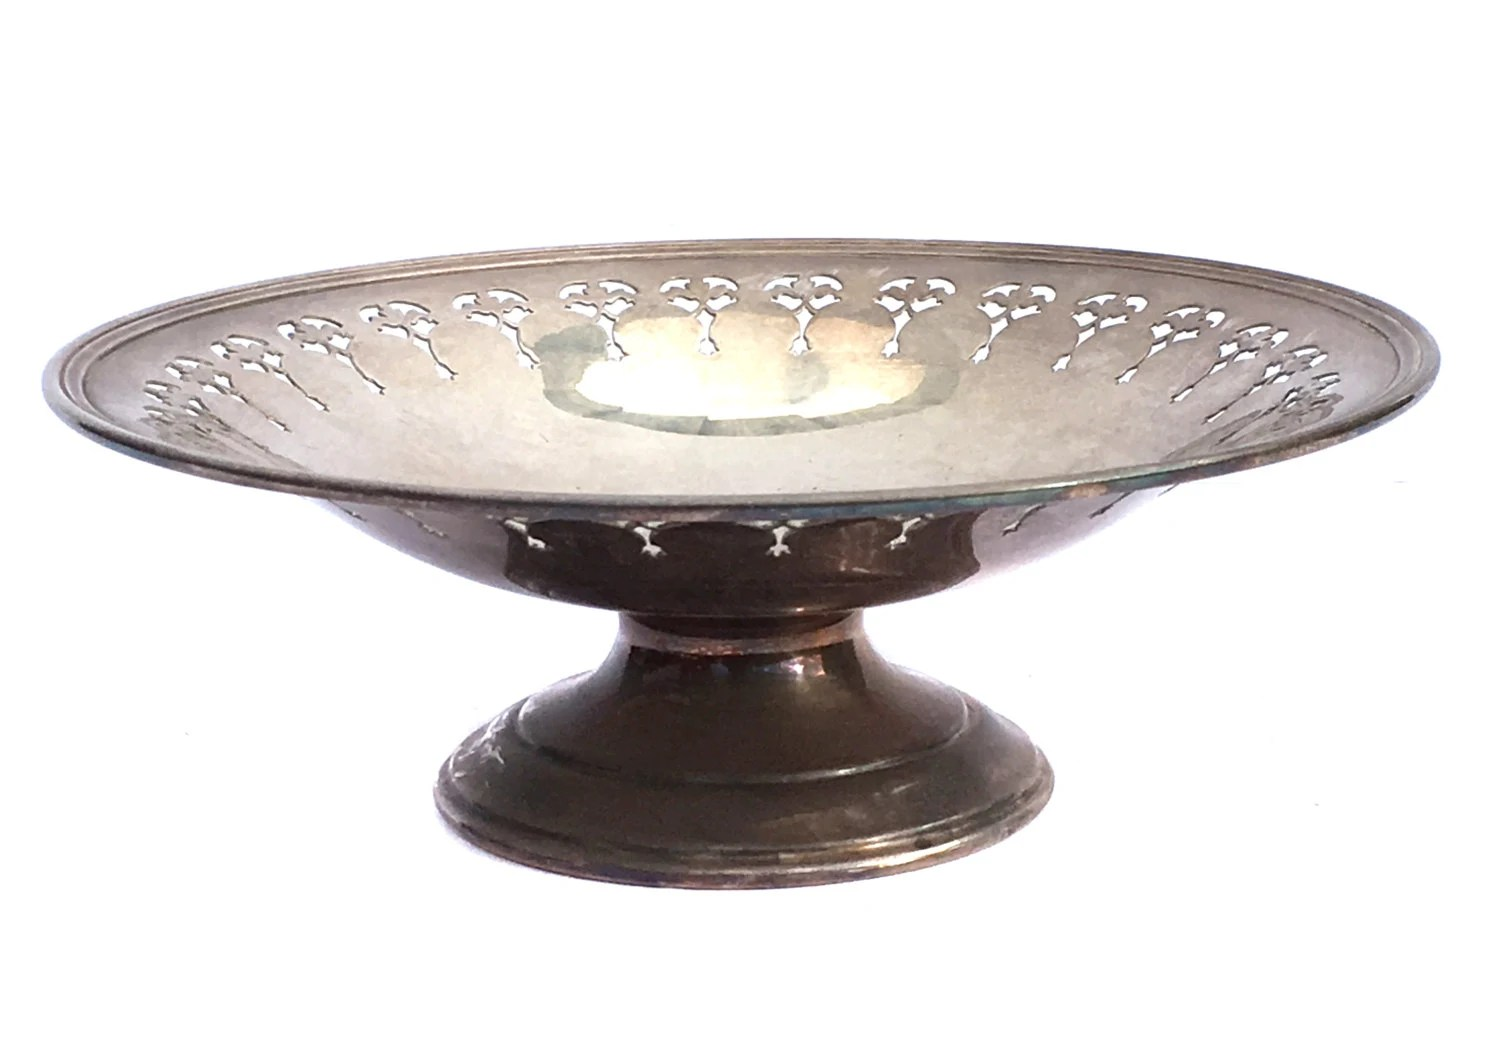 Edwardian Epns Silver Plate Pedestal Cake Stand By